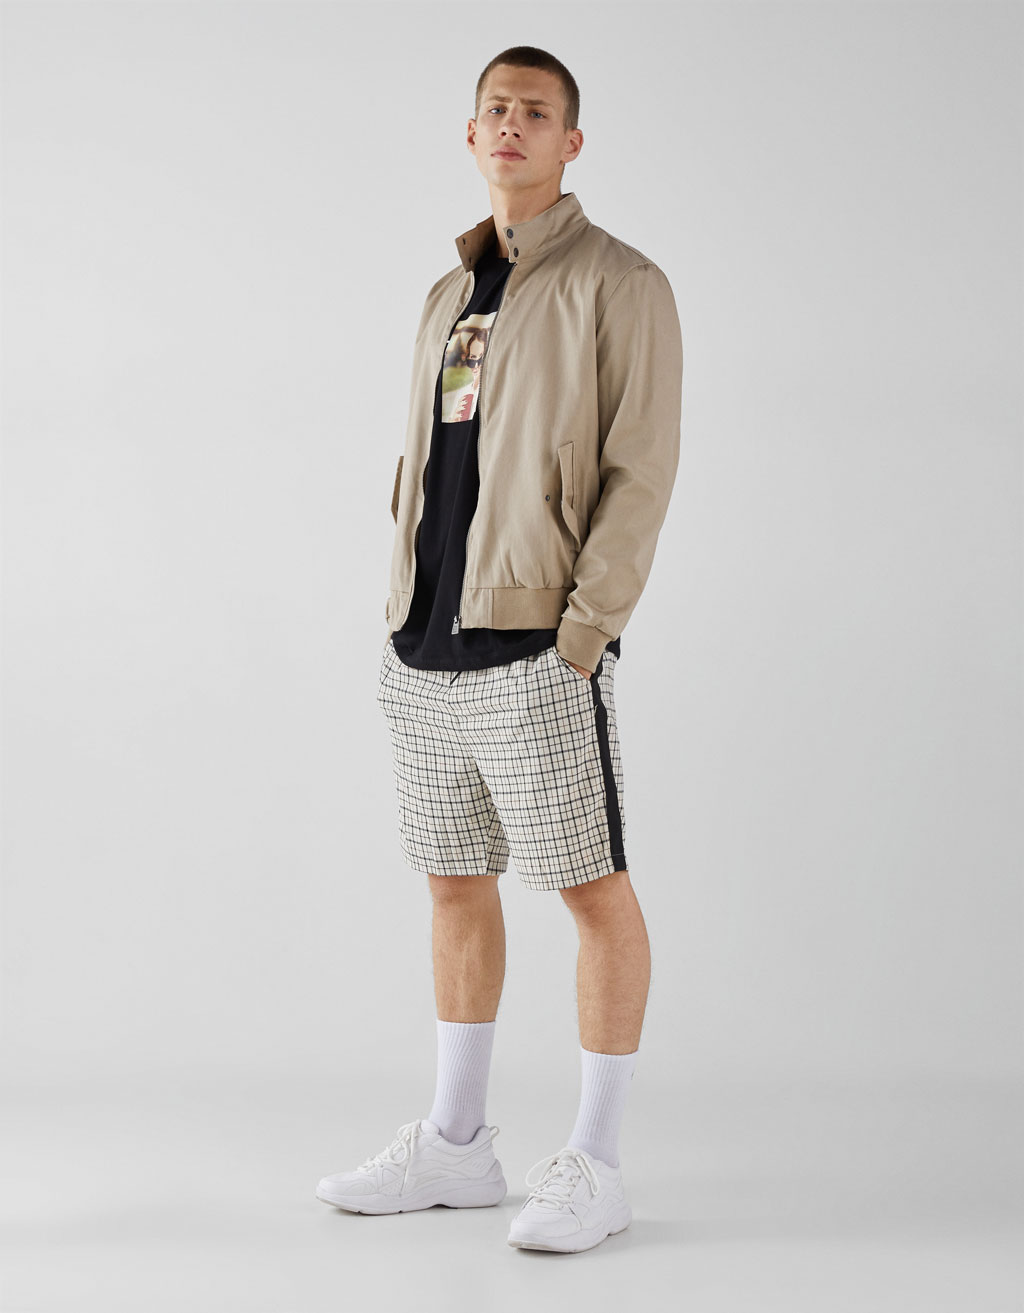 Bermuda shorts a quadri con striscia laterale